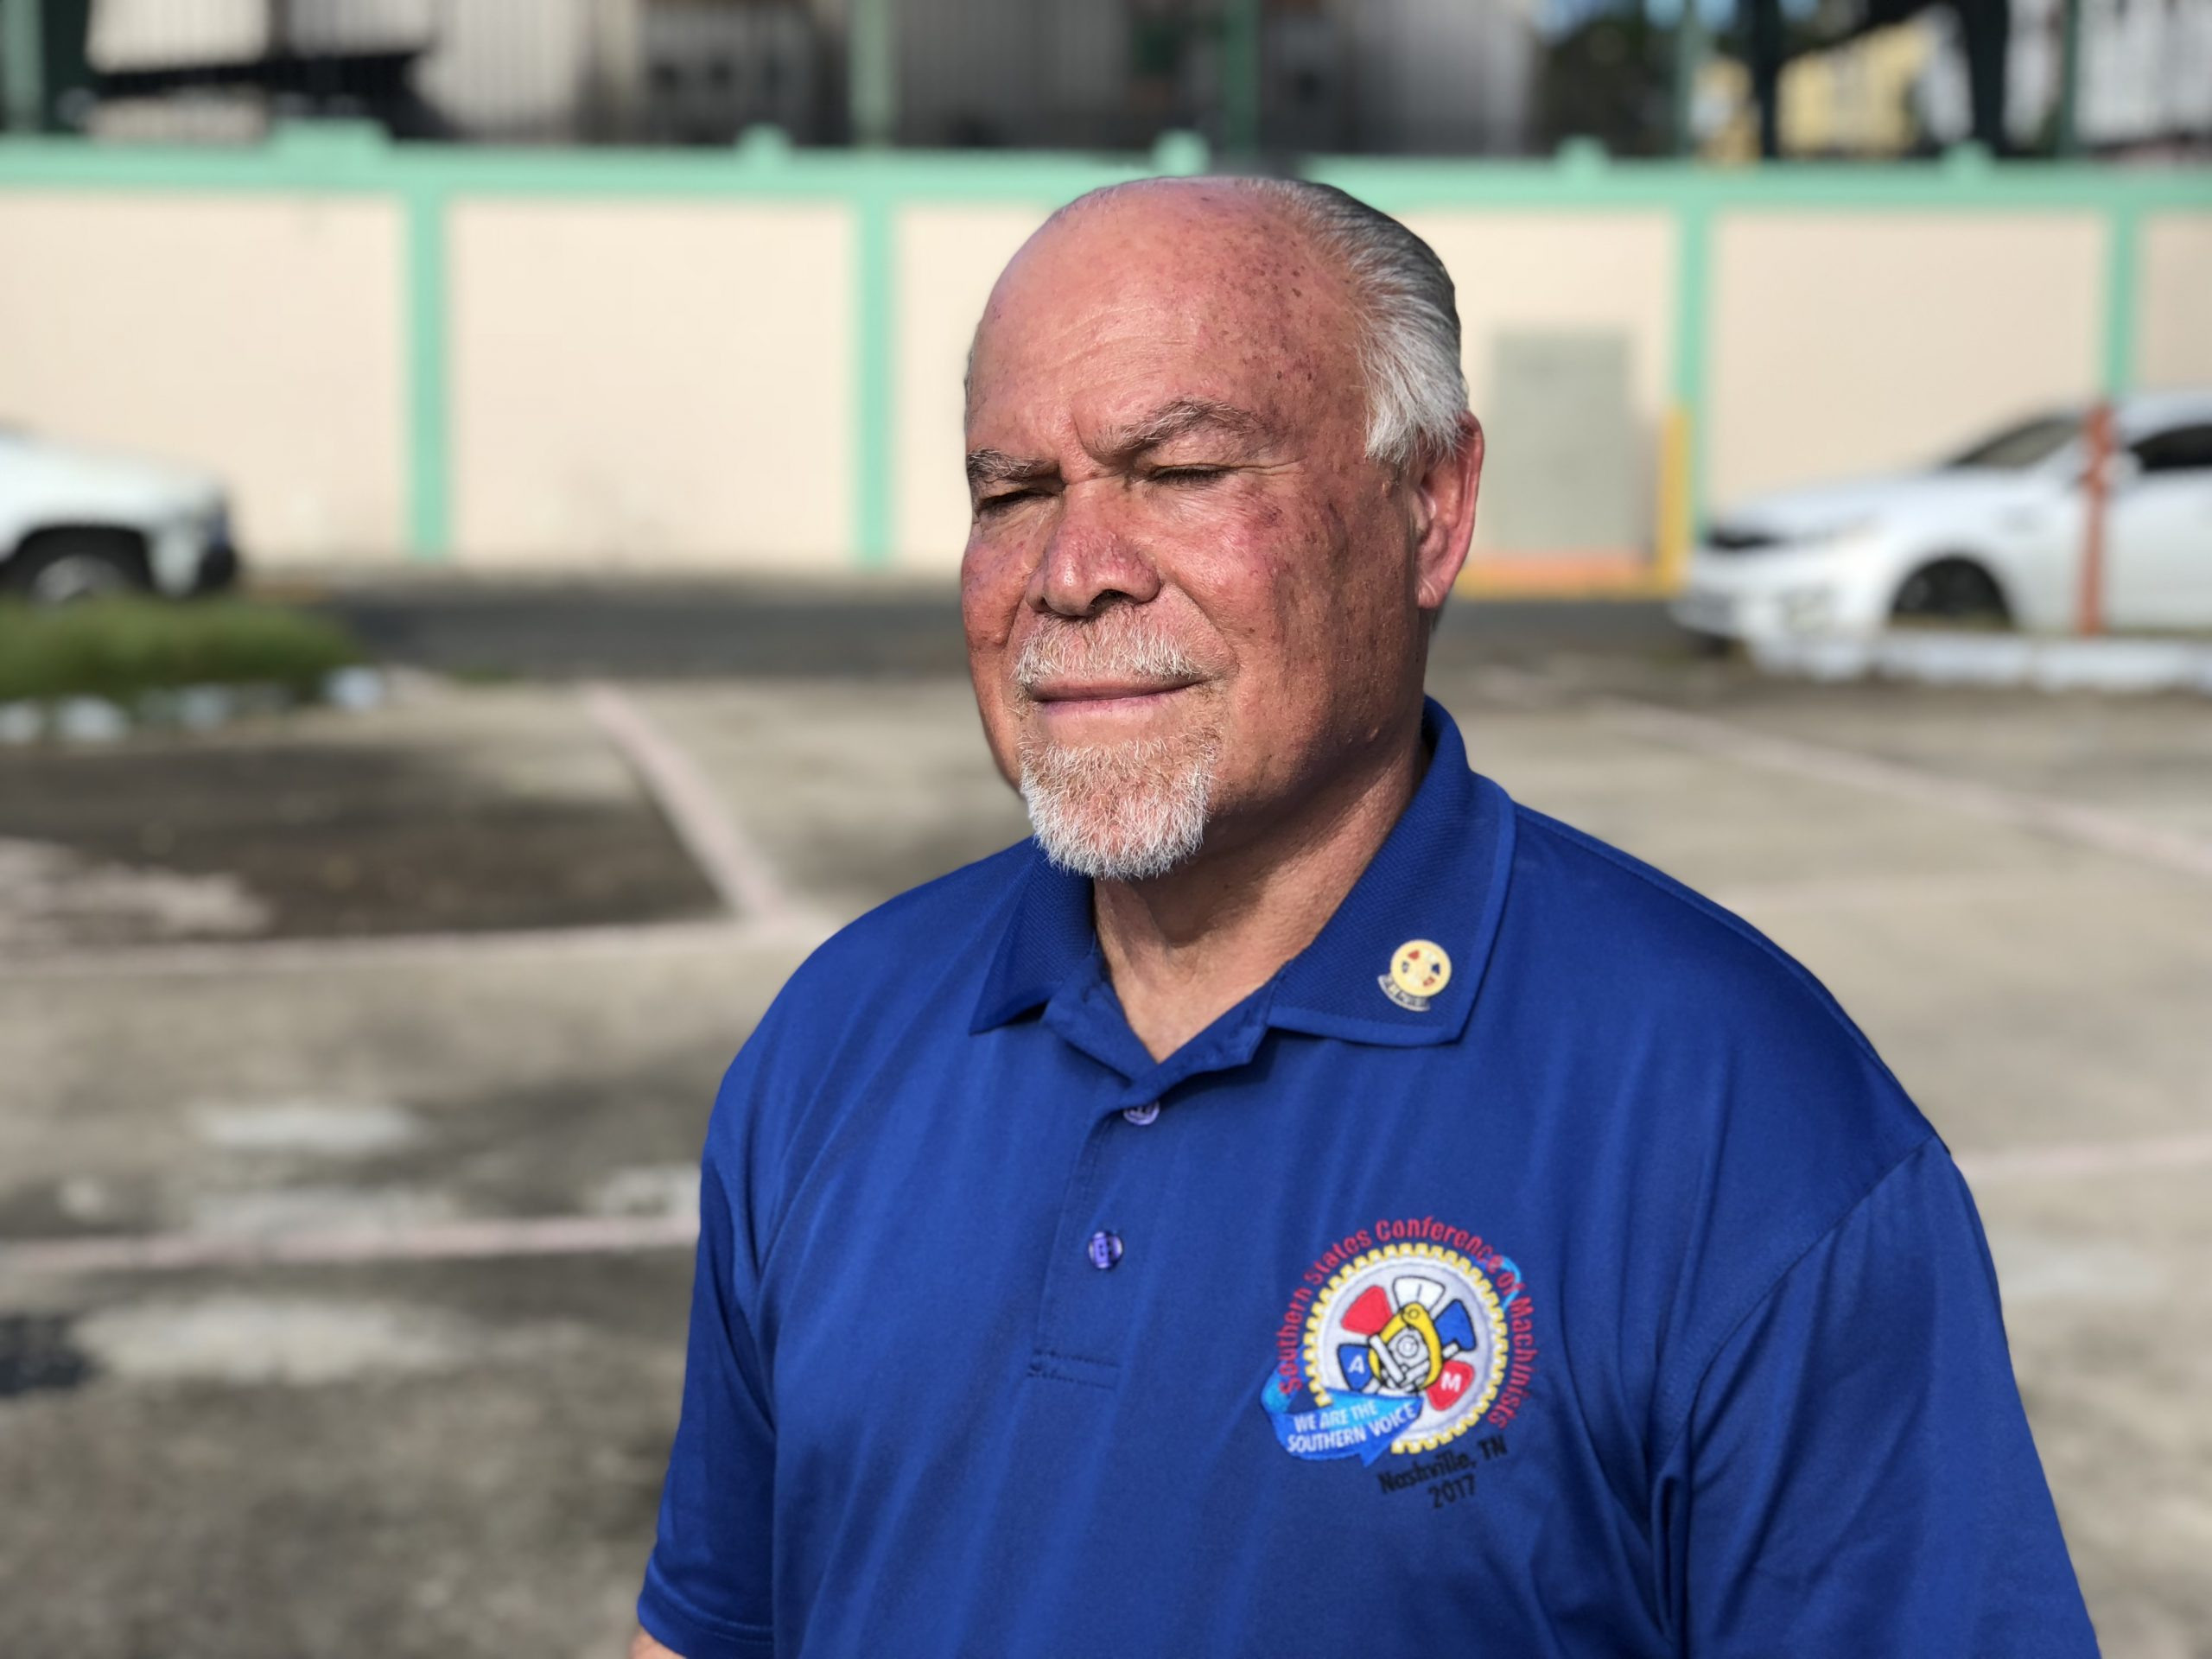 Virtual Town Hall: IAM Puerto Rico Leader to Discuss Island's Challenges, Union Solidarity